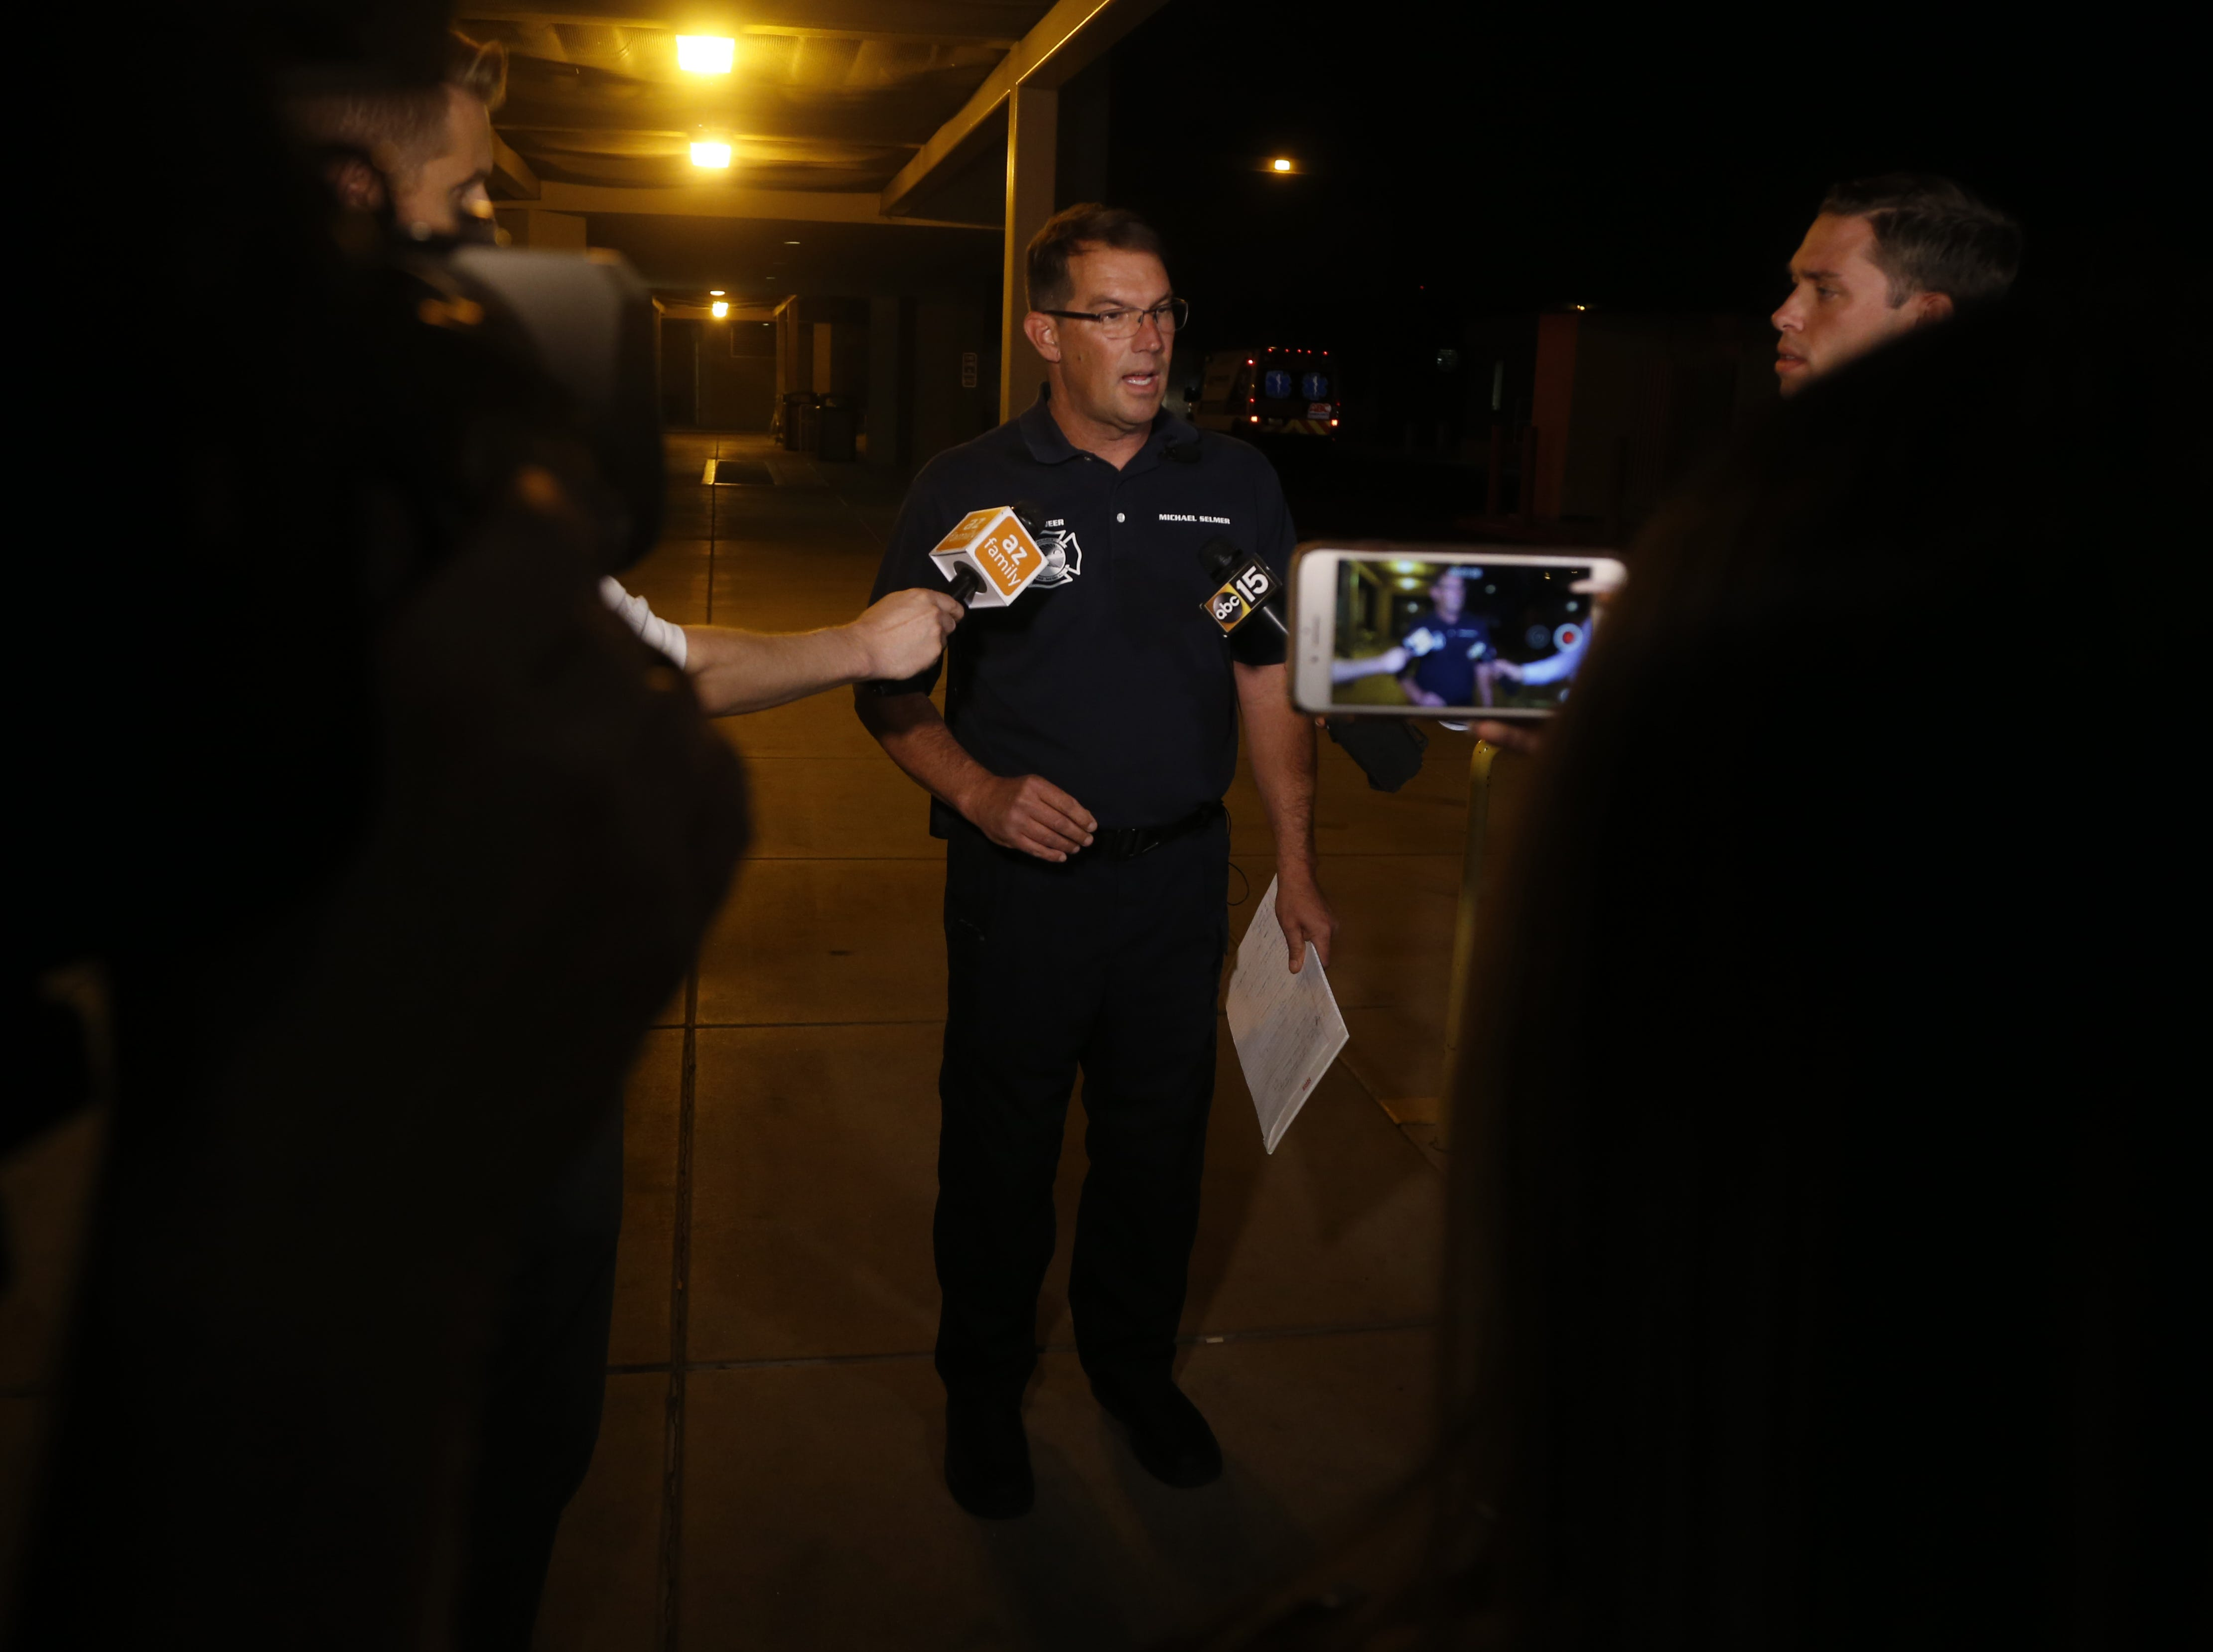 Peoria PIO Michael Selmer speaks to the press about injuries firefighters sustained responding to a call on Friday, April 19, 2019.